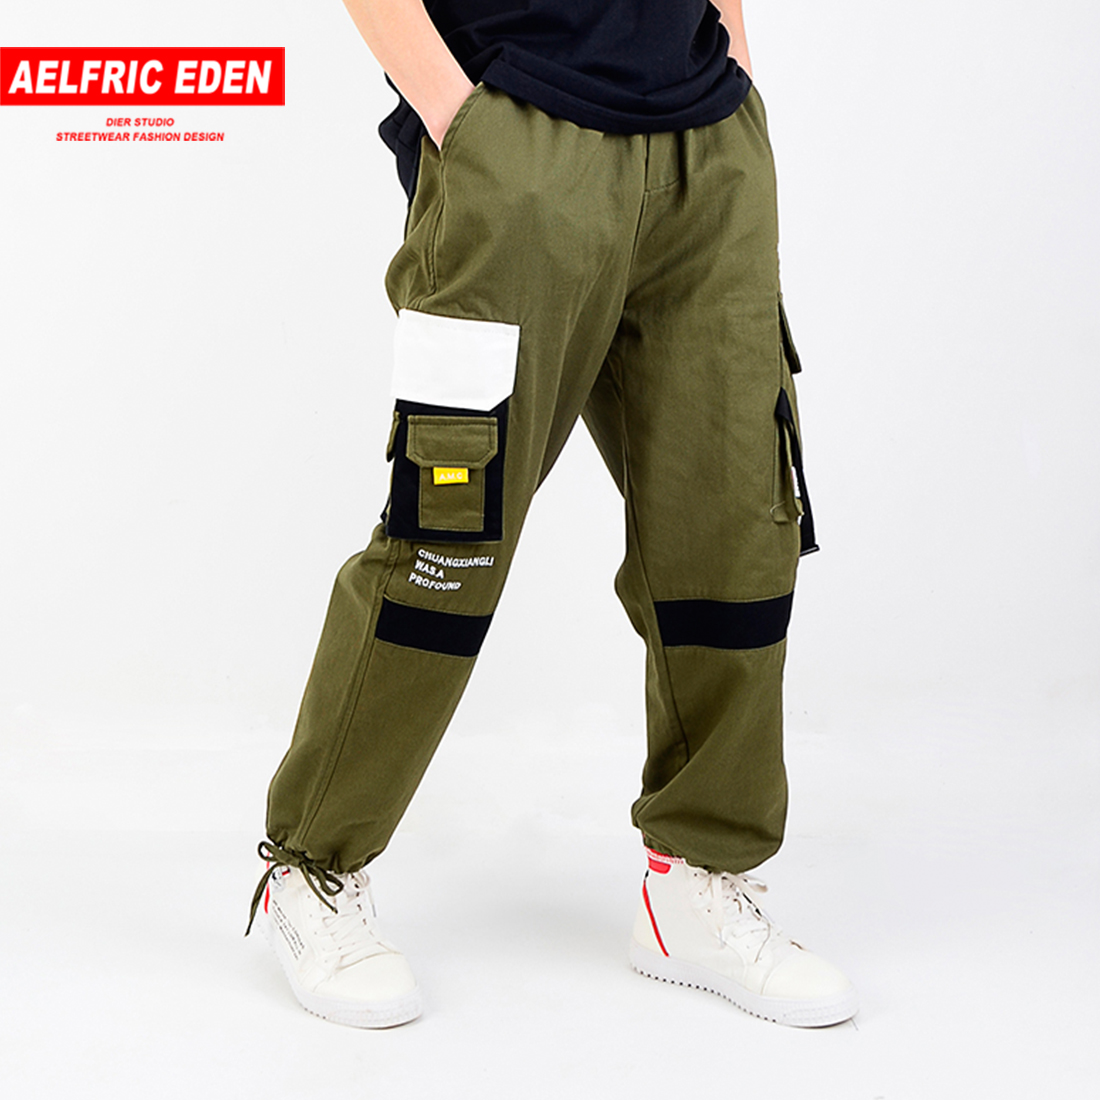 Aelfric Eden Pockets Cargo Pants Men 2019 Spring Color Block Harem Jogger Skateboard Trousers Fashion Streetwear Casual Joggers